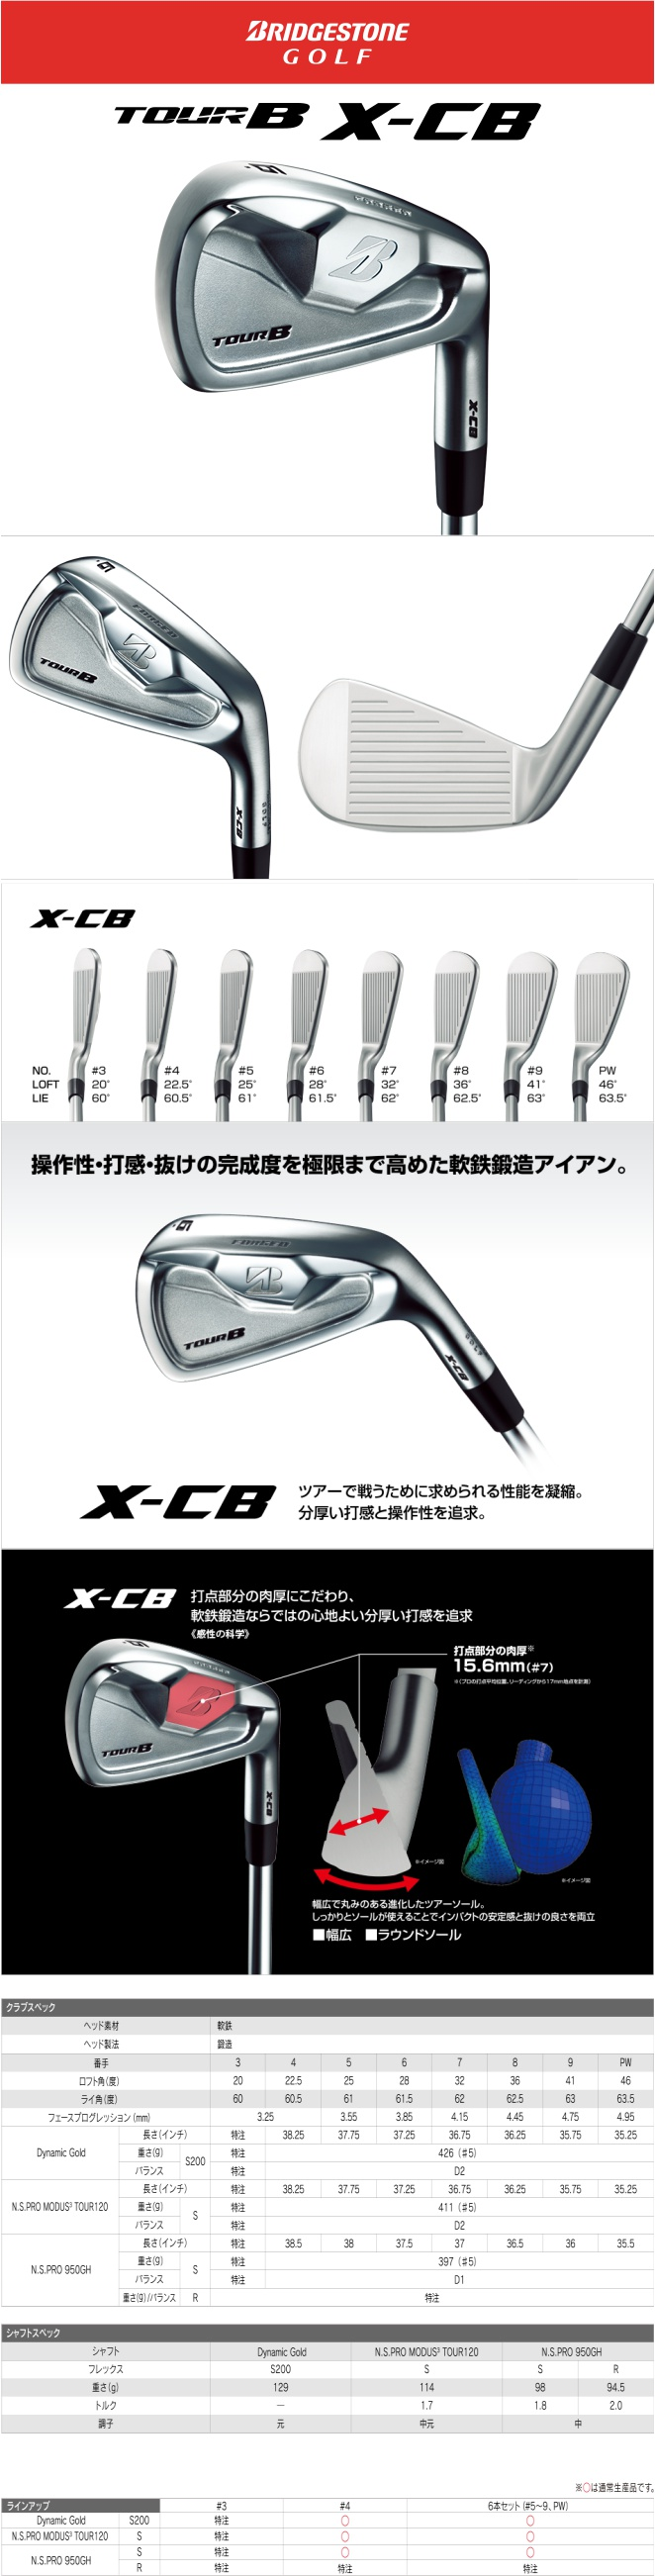 Bridgestone Tour B X-CB Iron